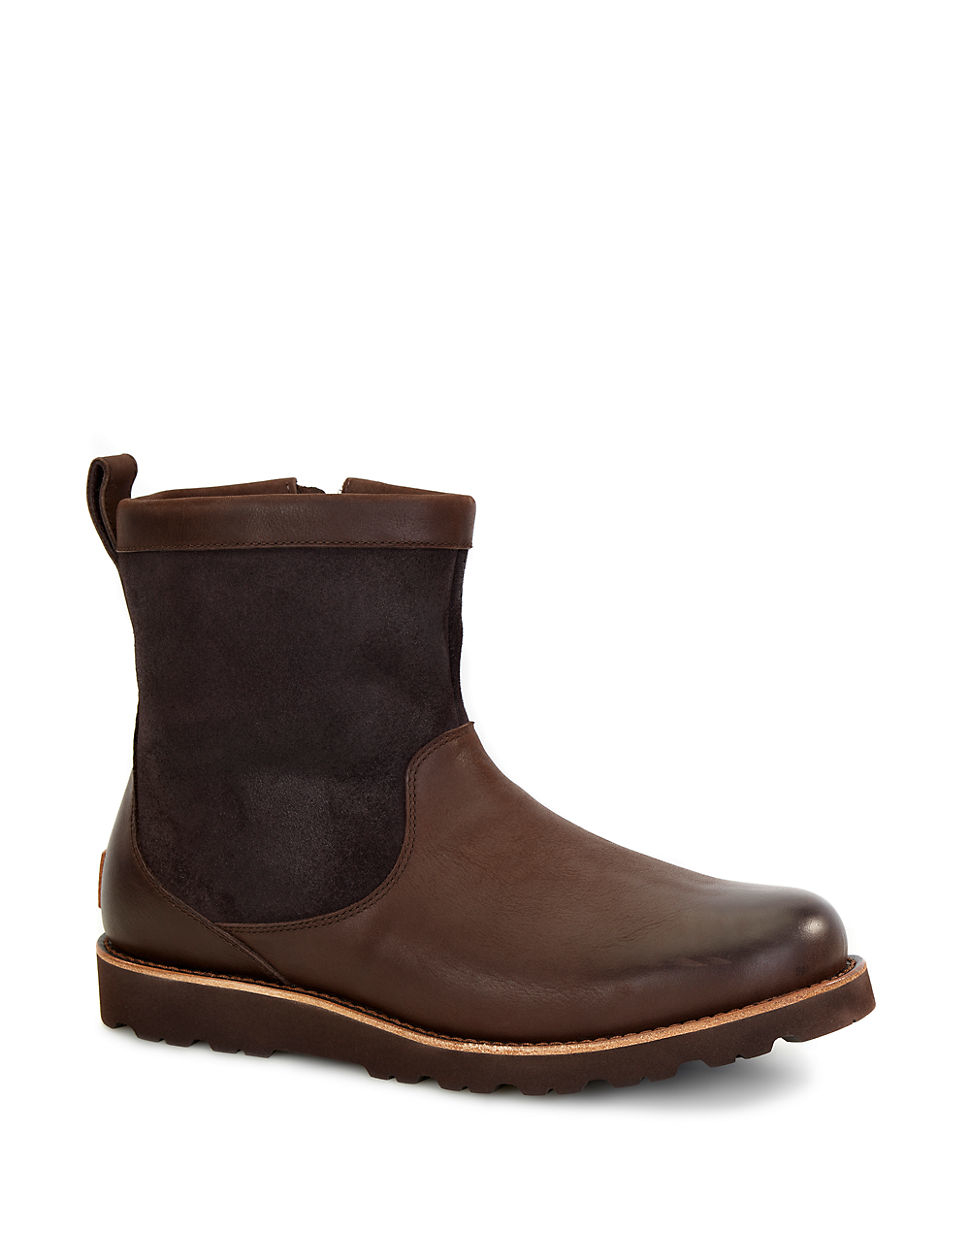 ugg munroe shearling lined leather boots in brown for